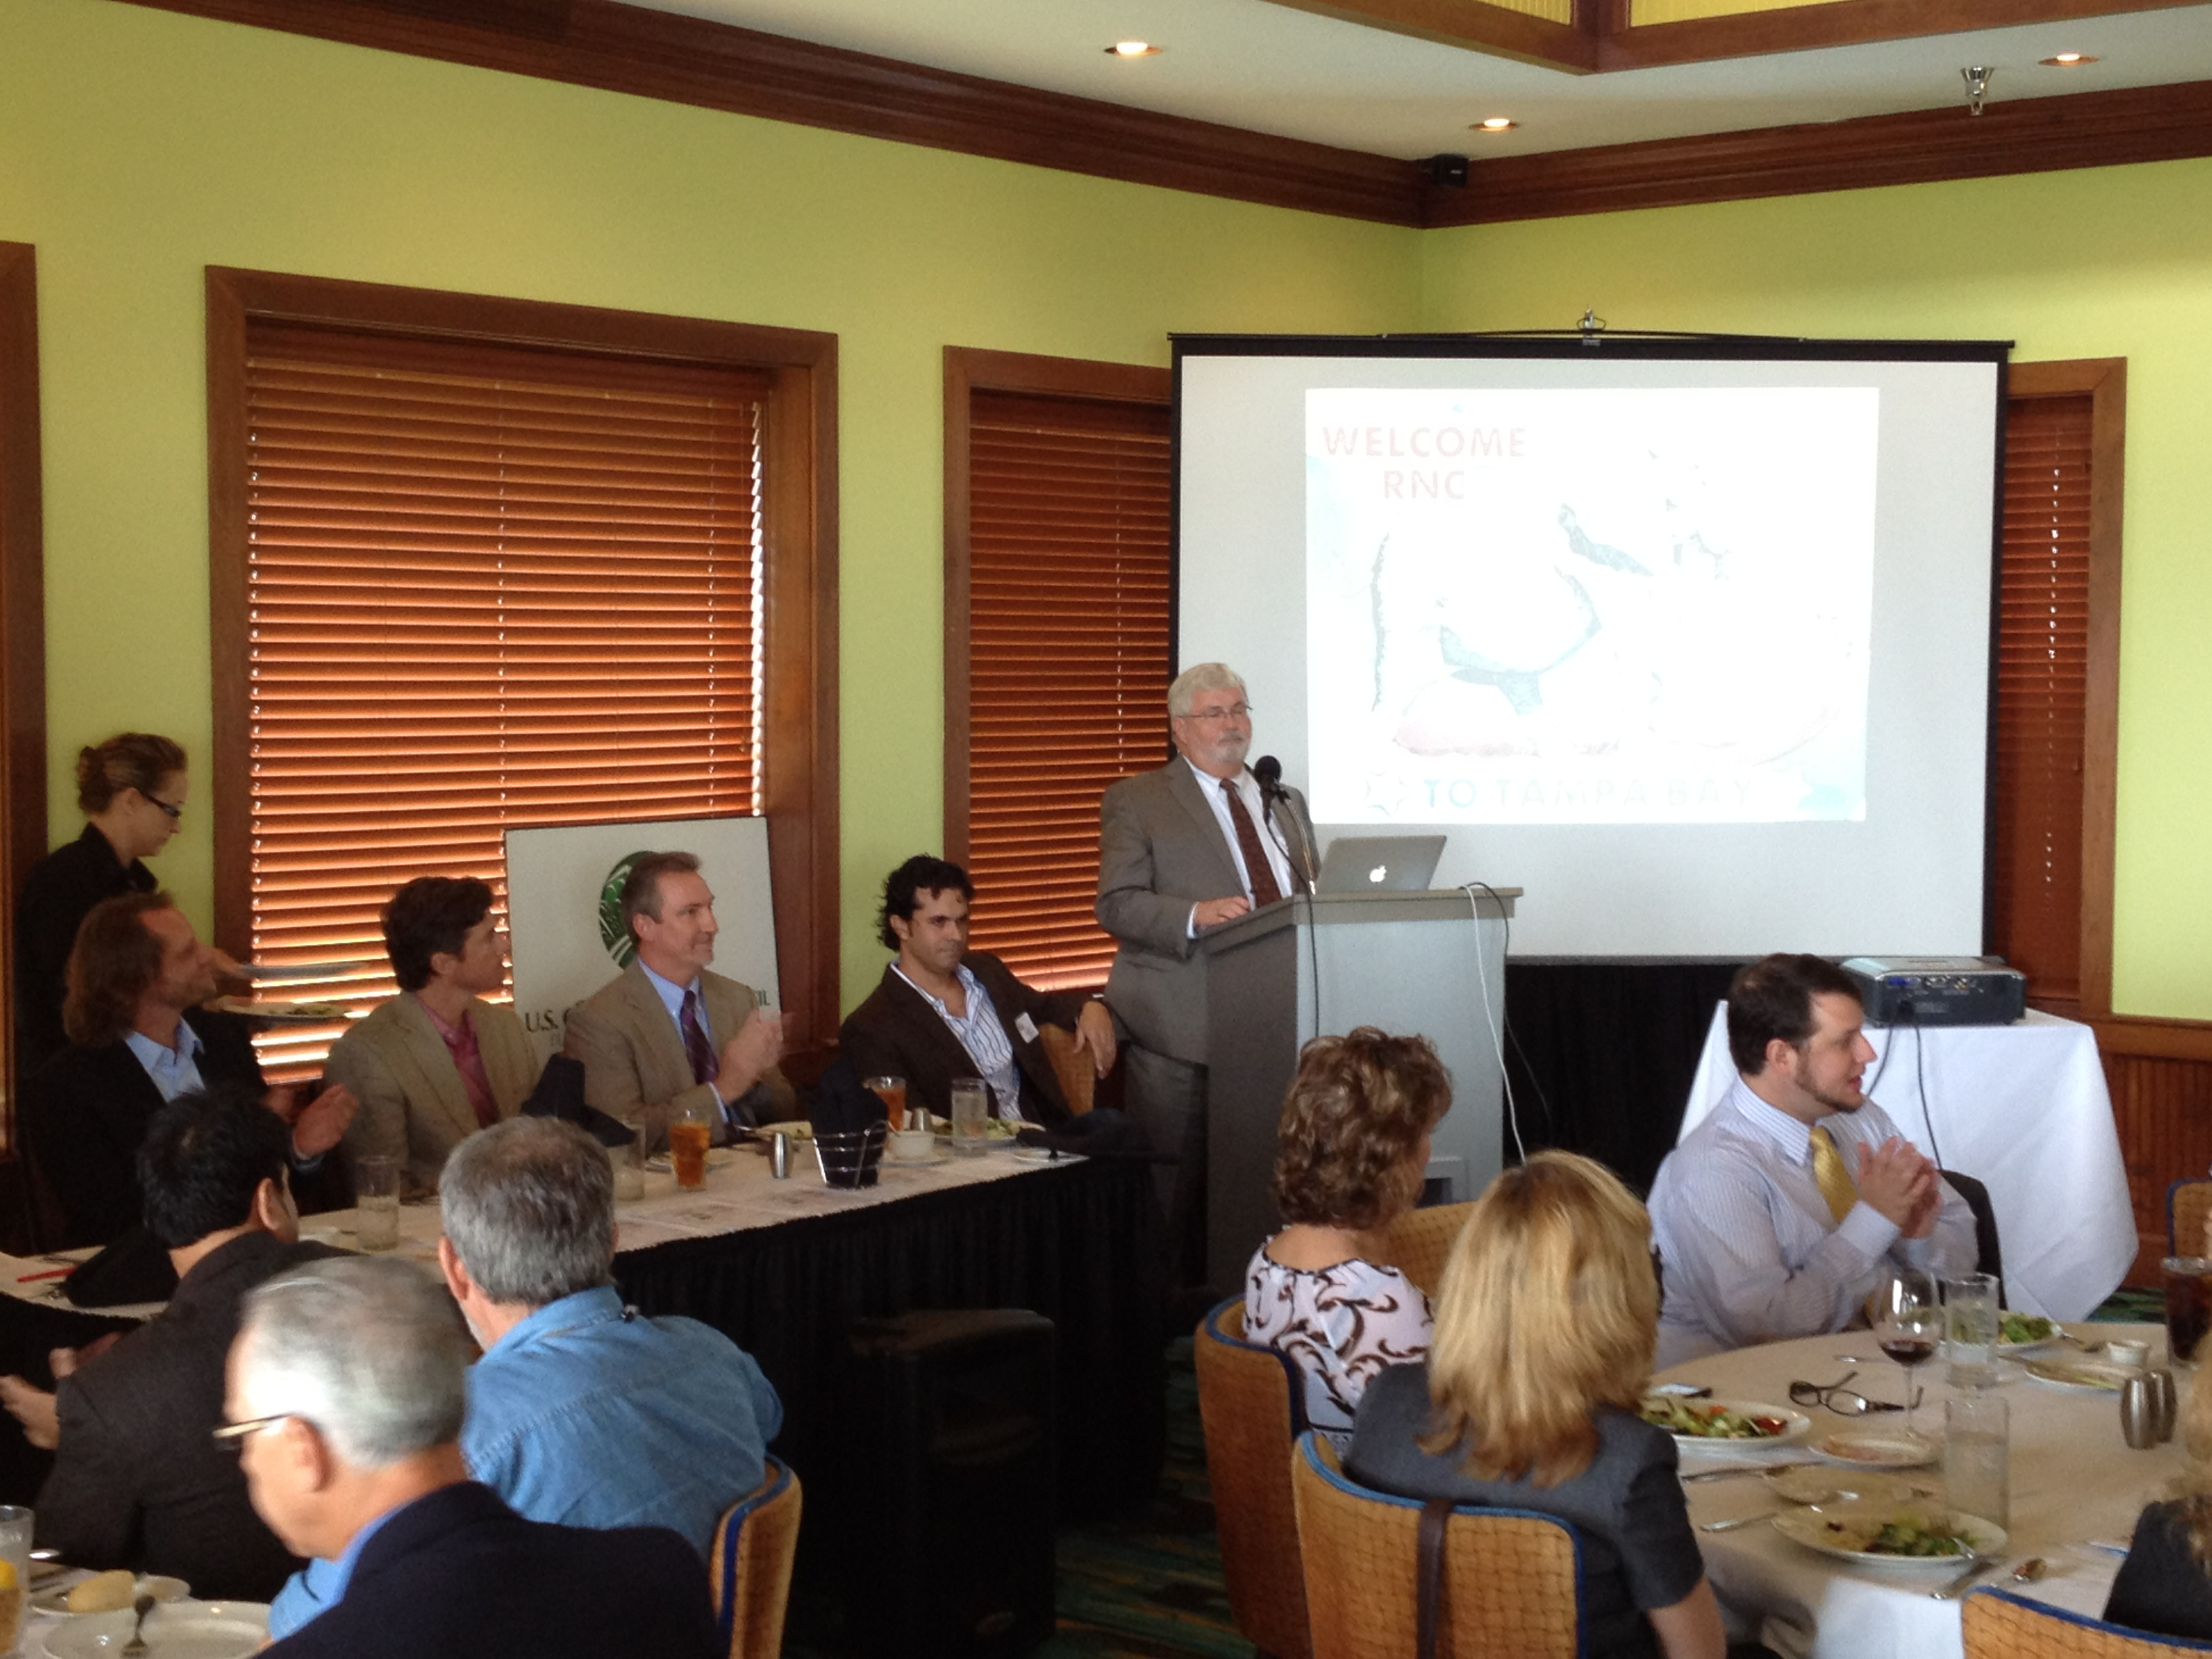 USGBC's Florida Gulf Coast chapter at Tampa's events, with Senator Latvala